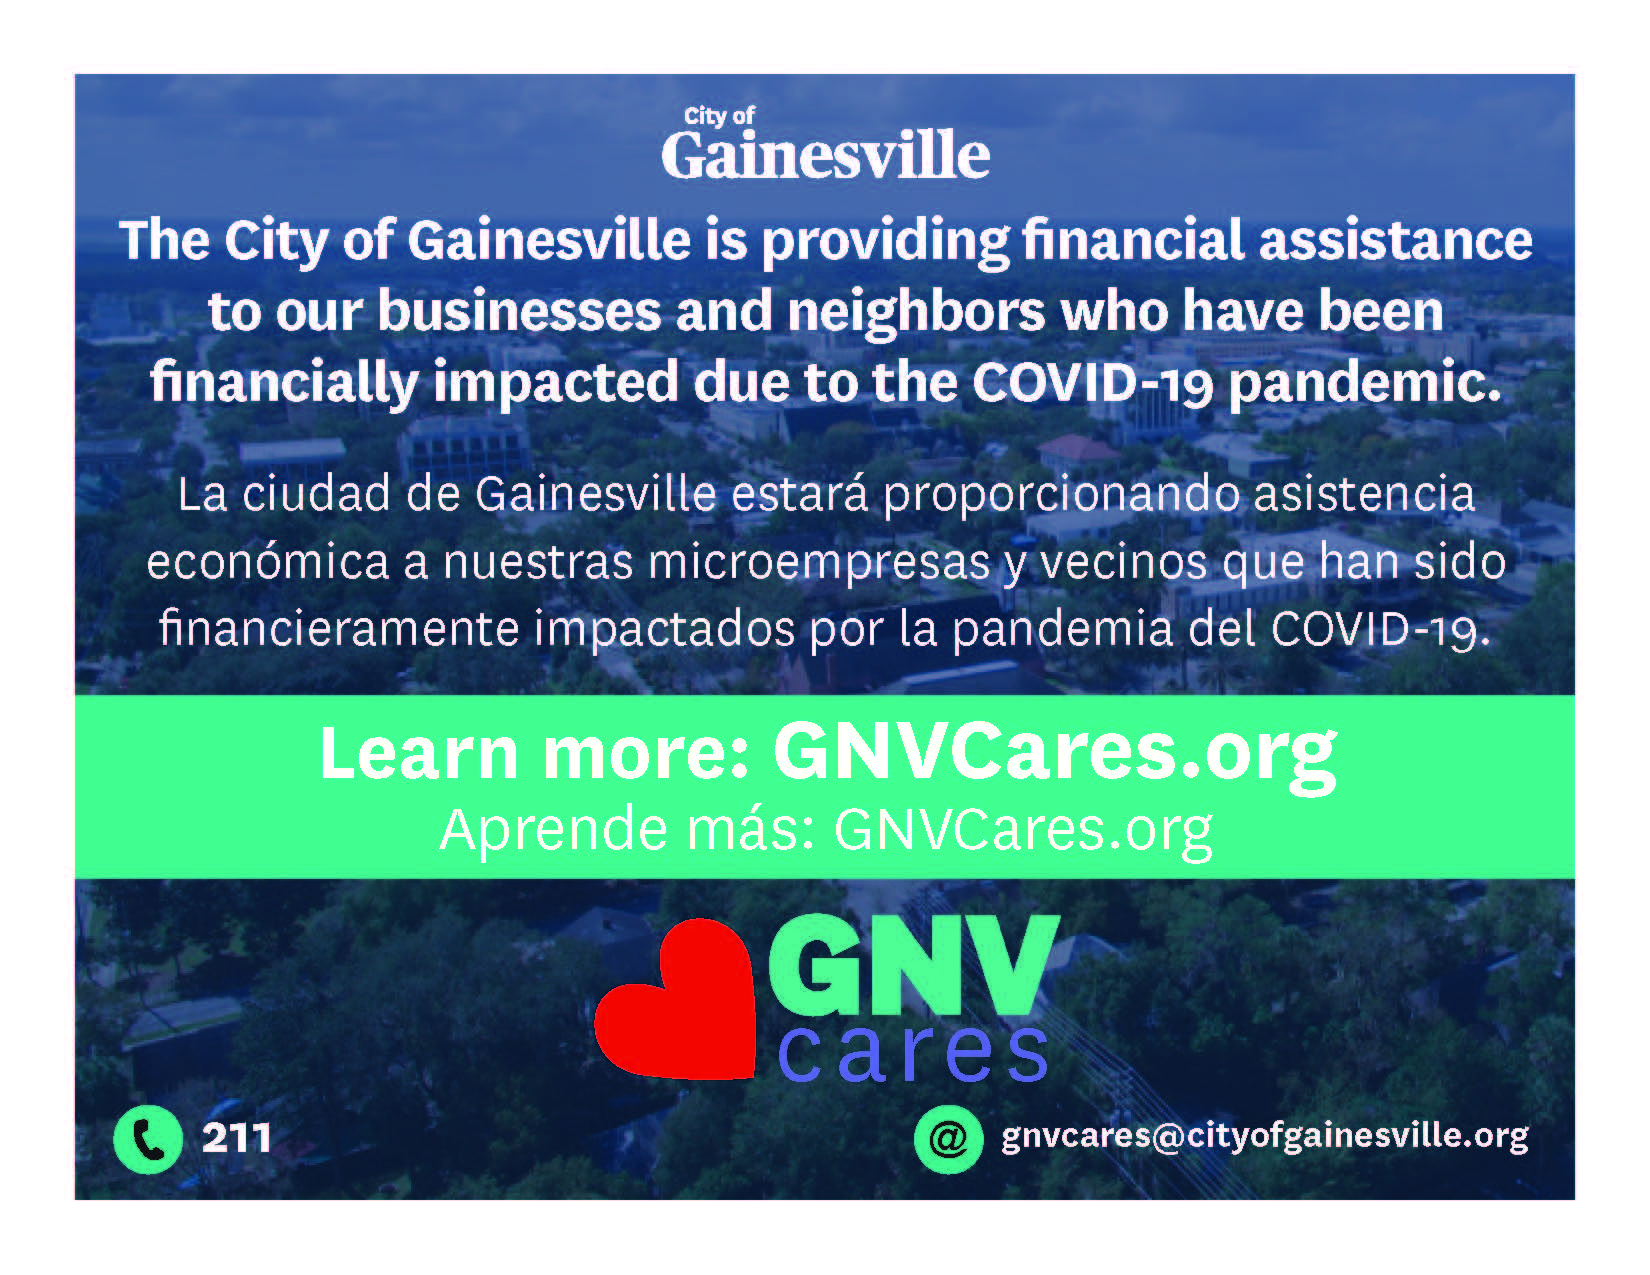 GNVCares Program to Provide COVID-19 Related Relief to Neighbors and Small Businesses